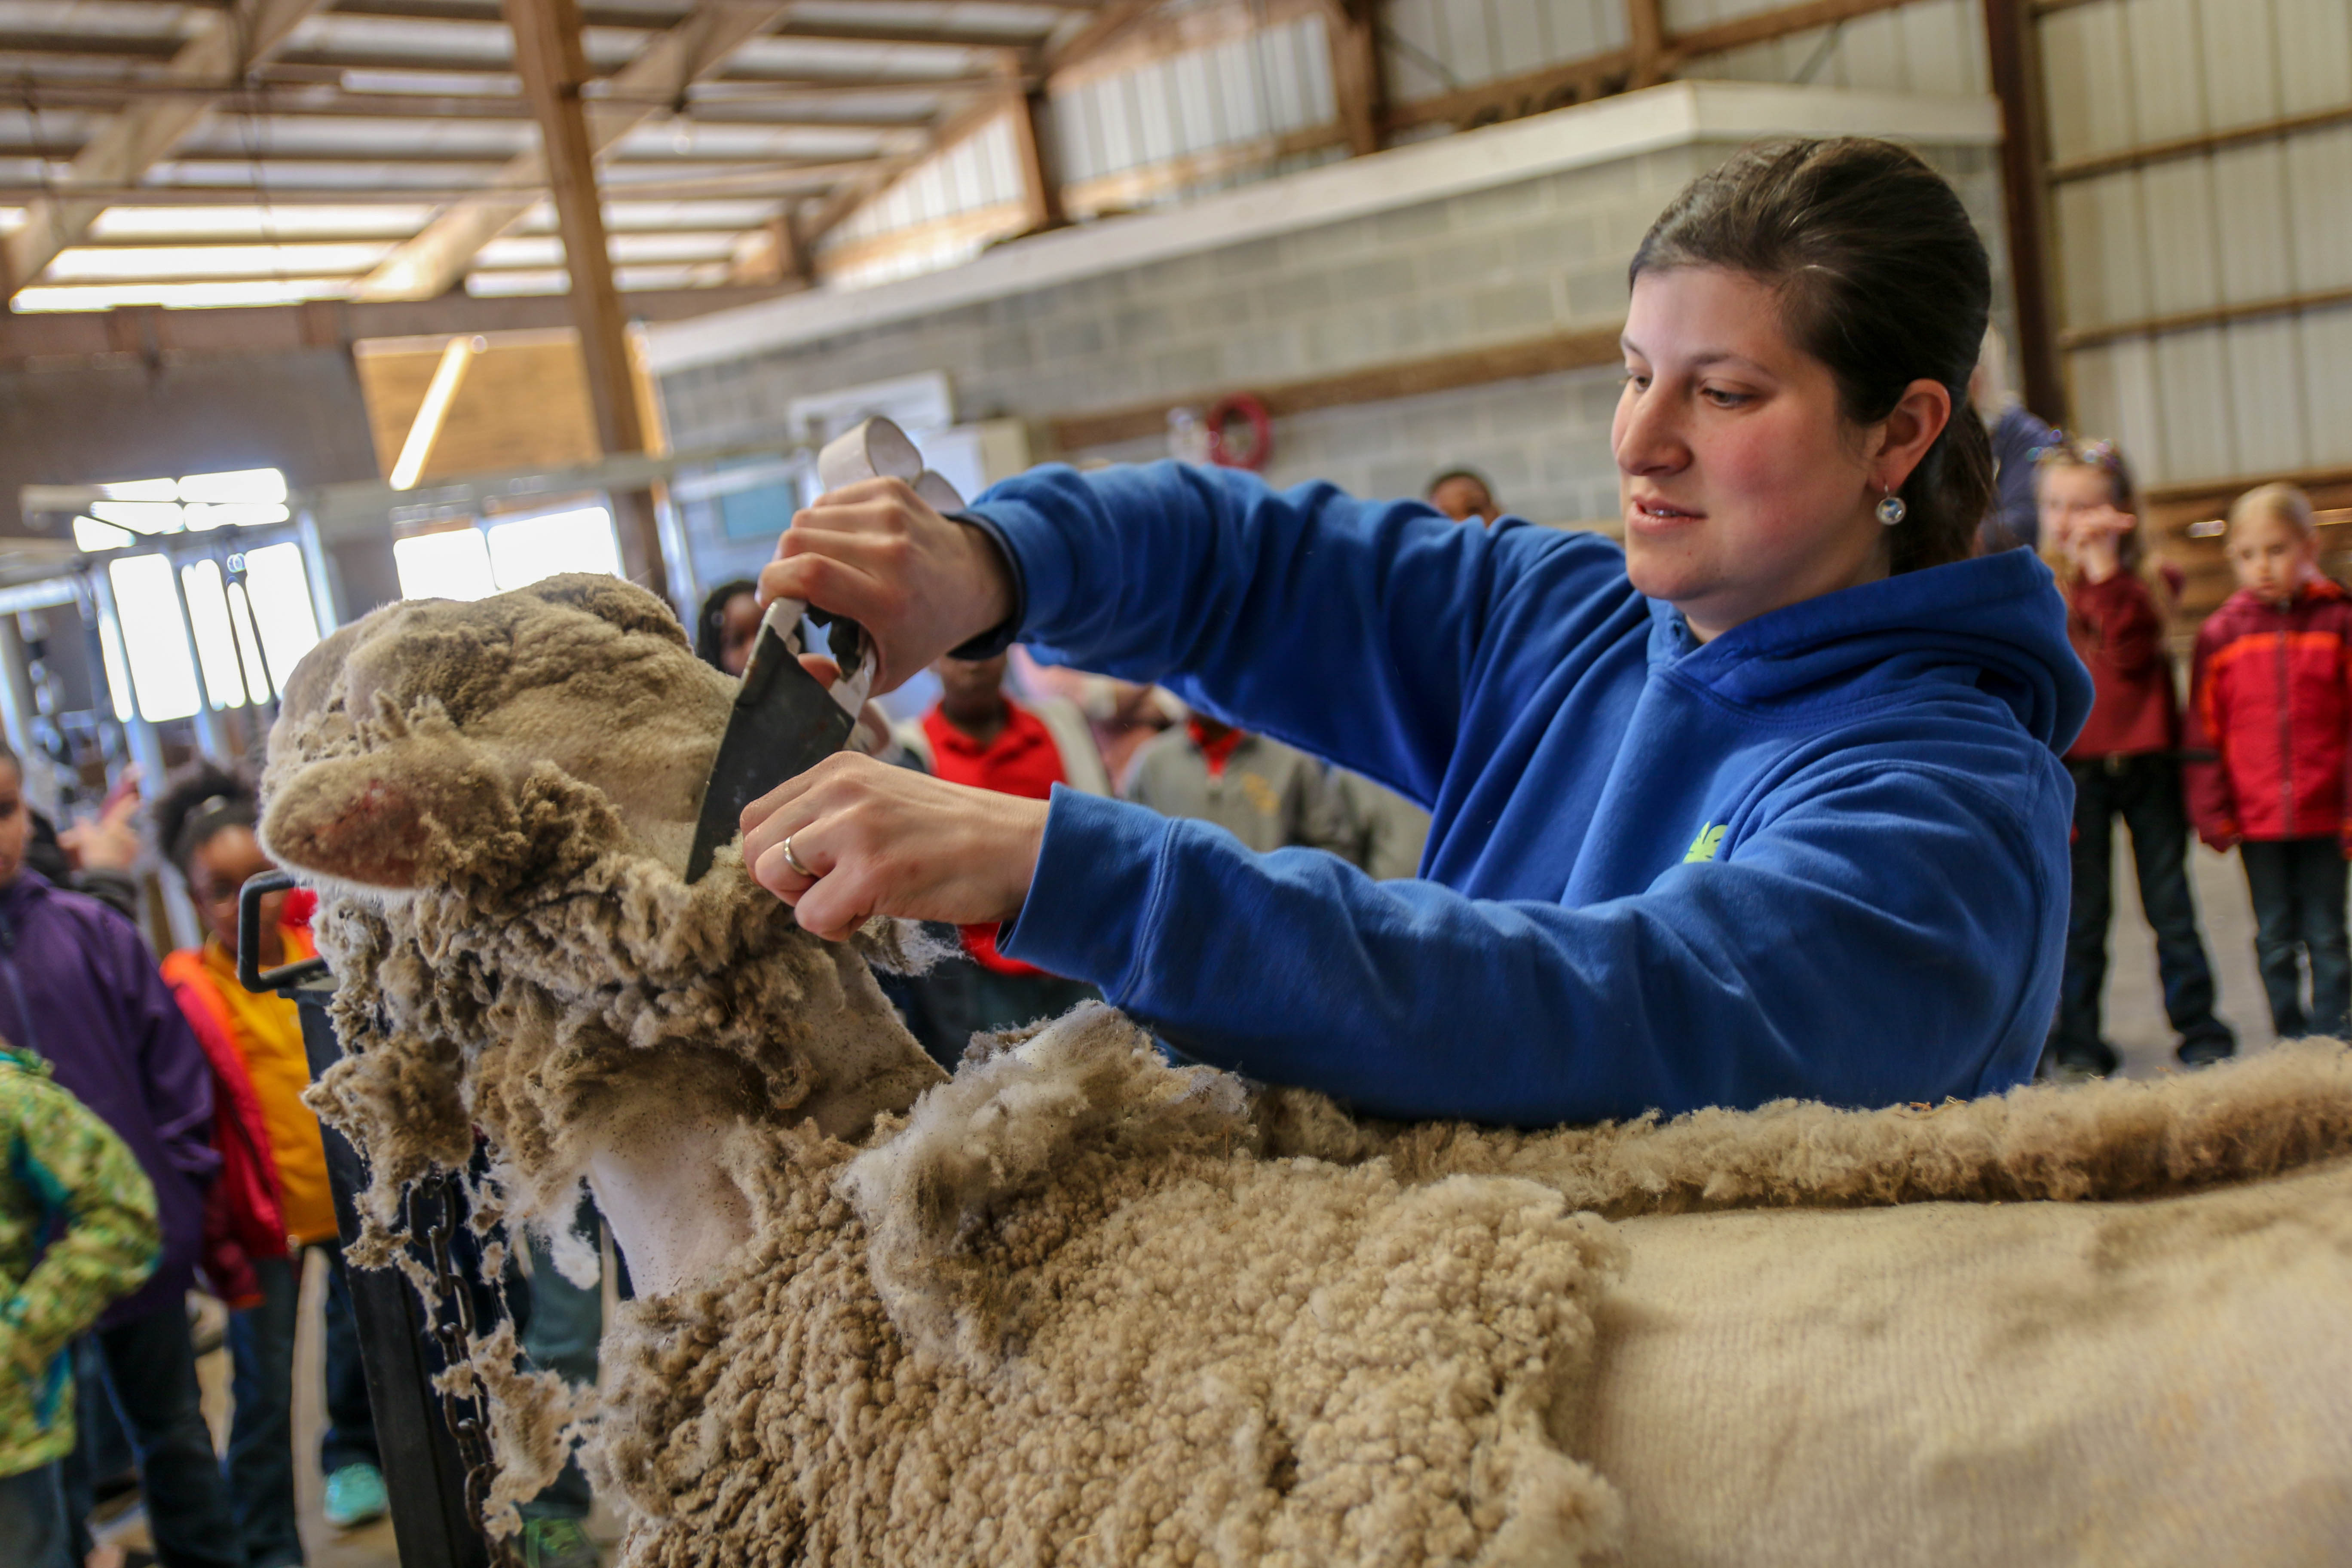 Elementary students learn how to shear sheep